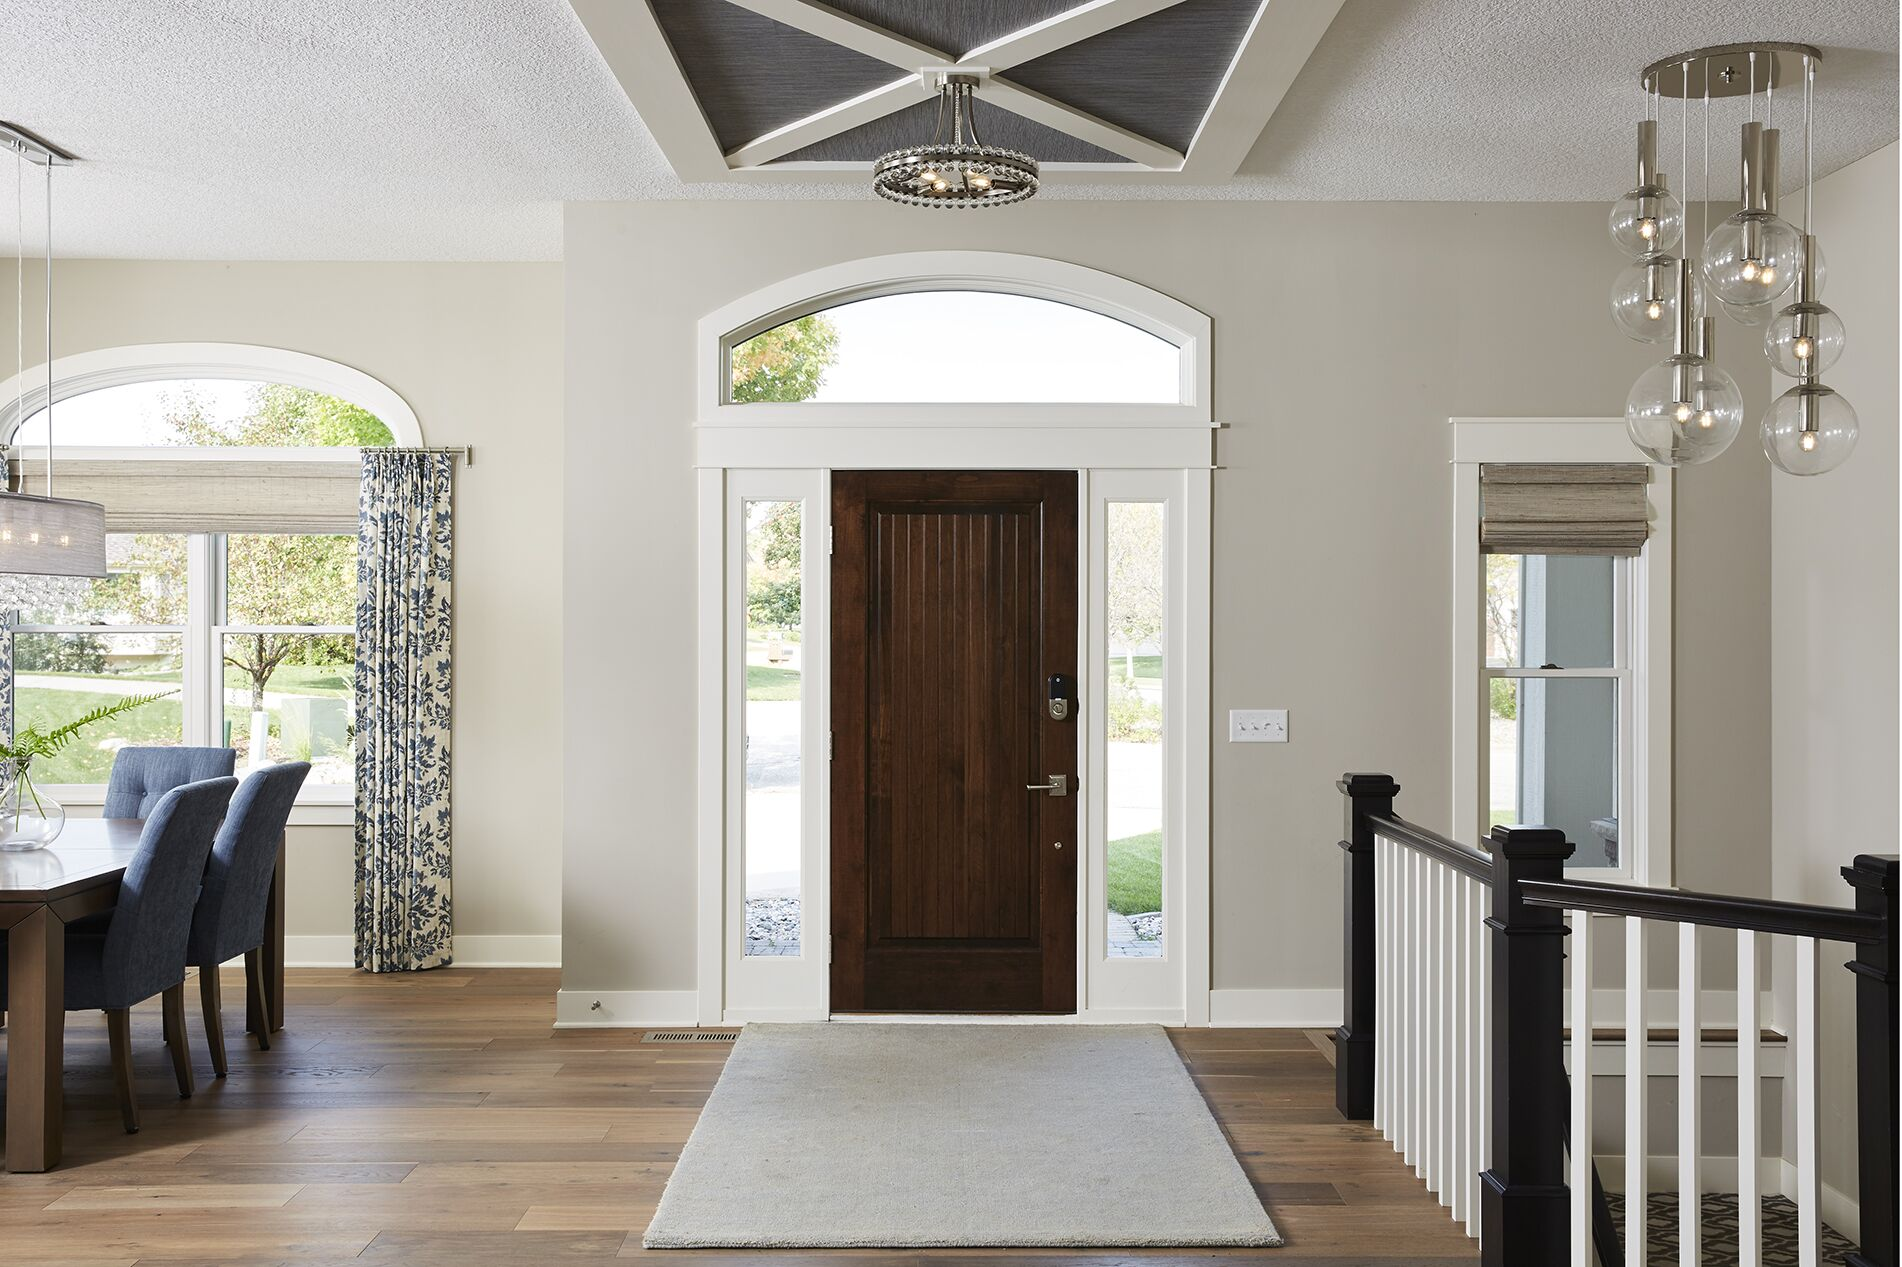 An open concept entryway welcomes guests with an array of complementary neutrals, crisp materials, and sleek light fixtures.